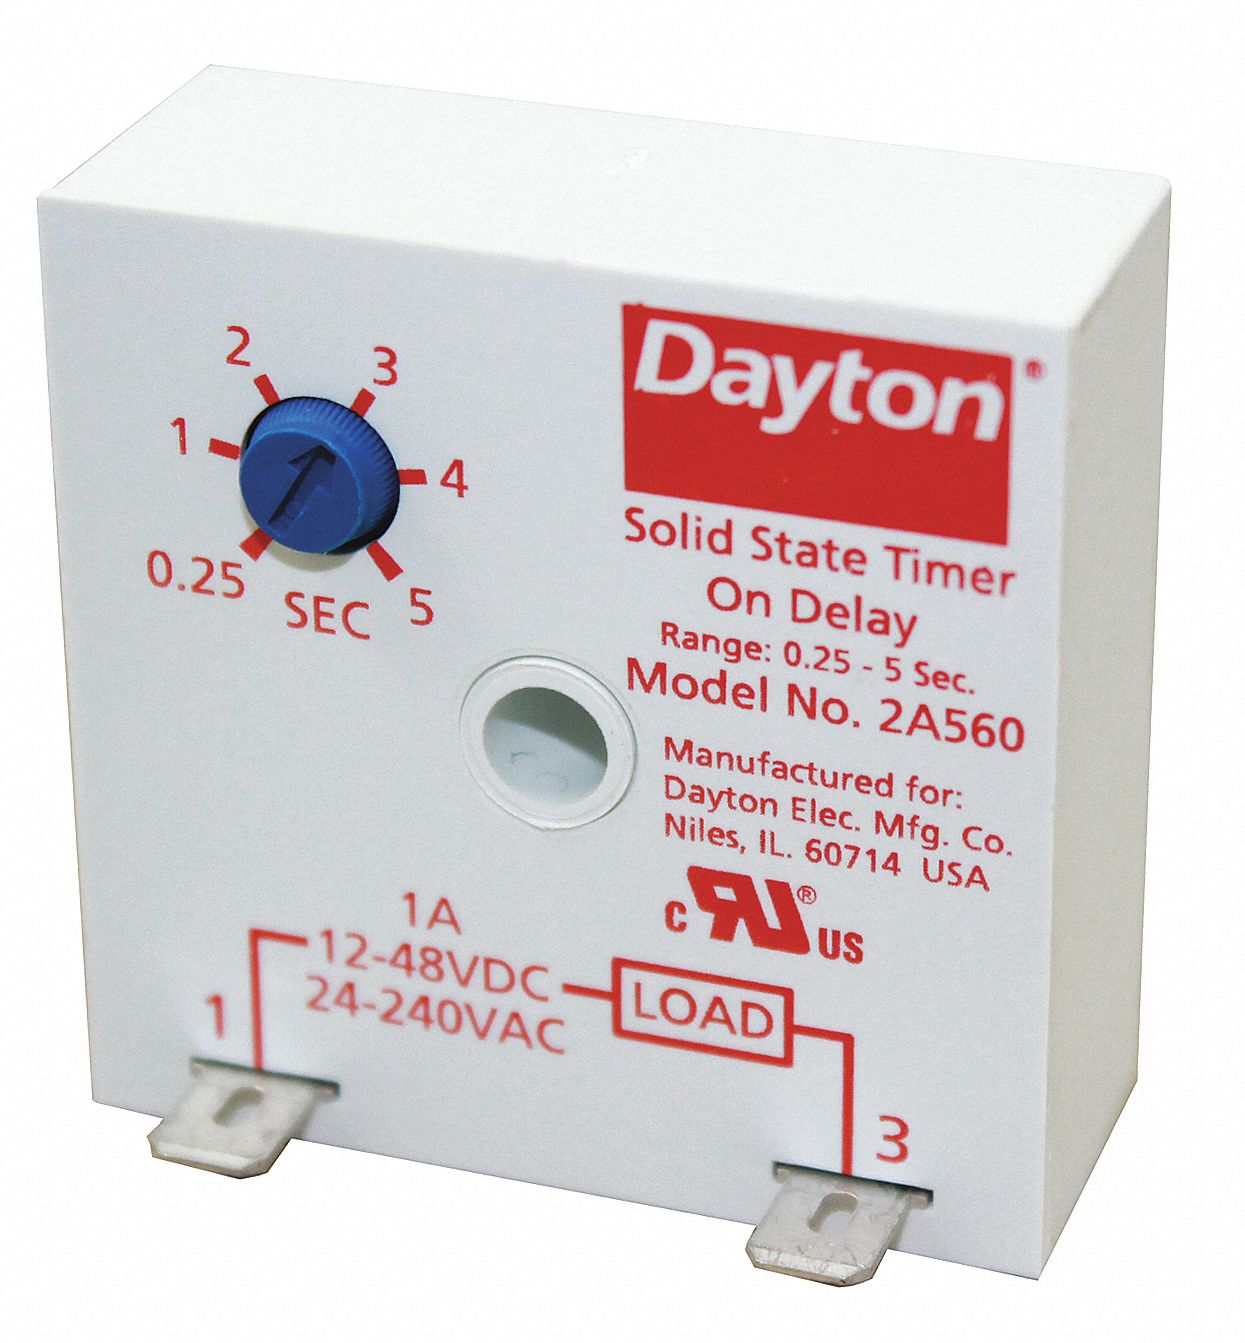 hight resolution of dayton single function encapsulated timing relay 24 to 240vac 12 to 48vdc mounting surface spst no 2a560 2a560 grainger